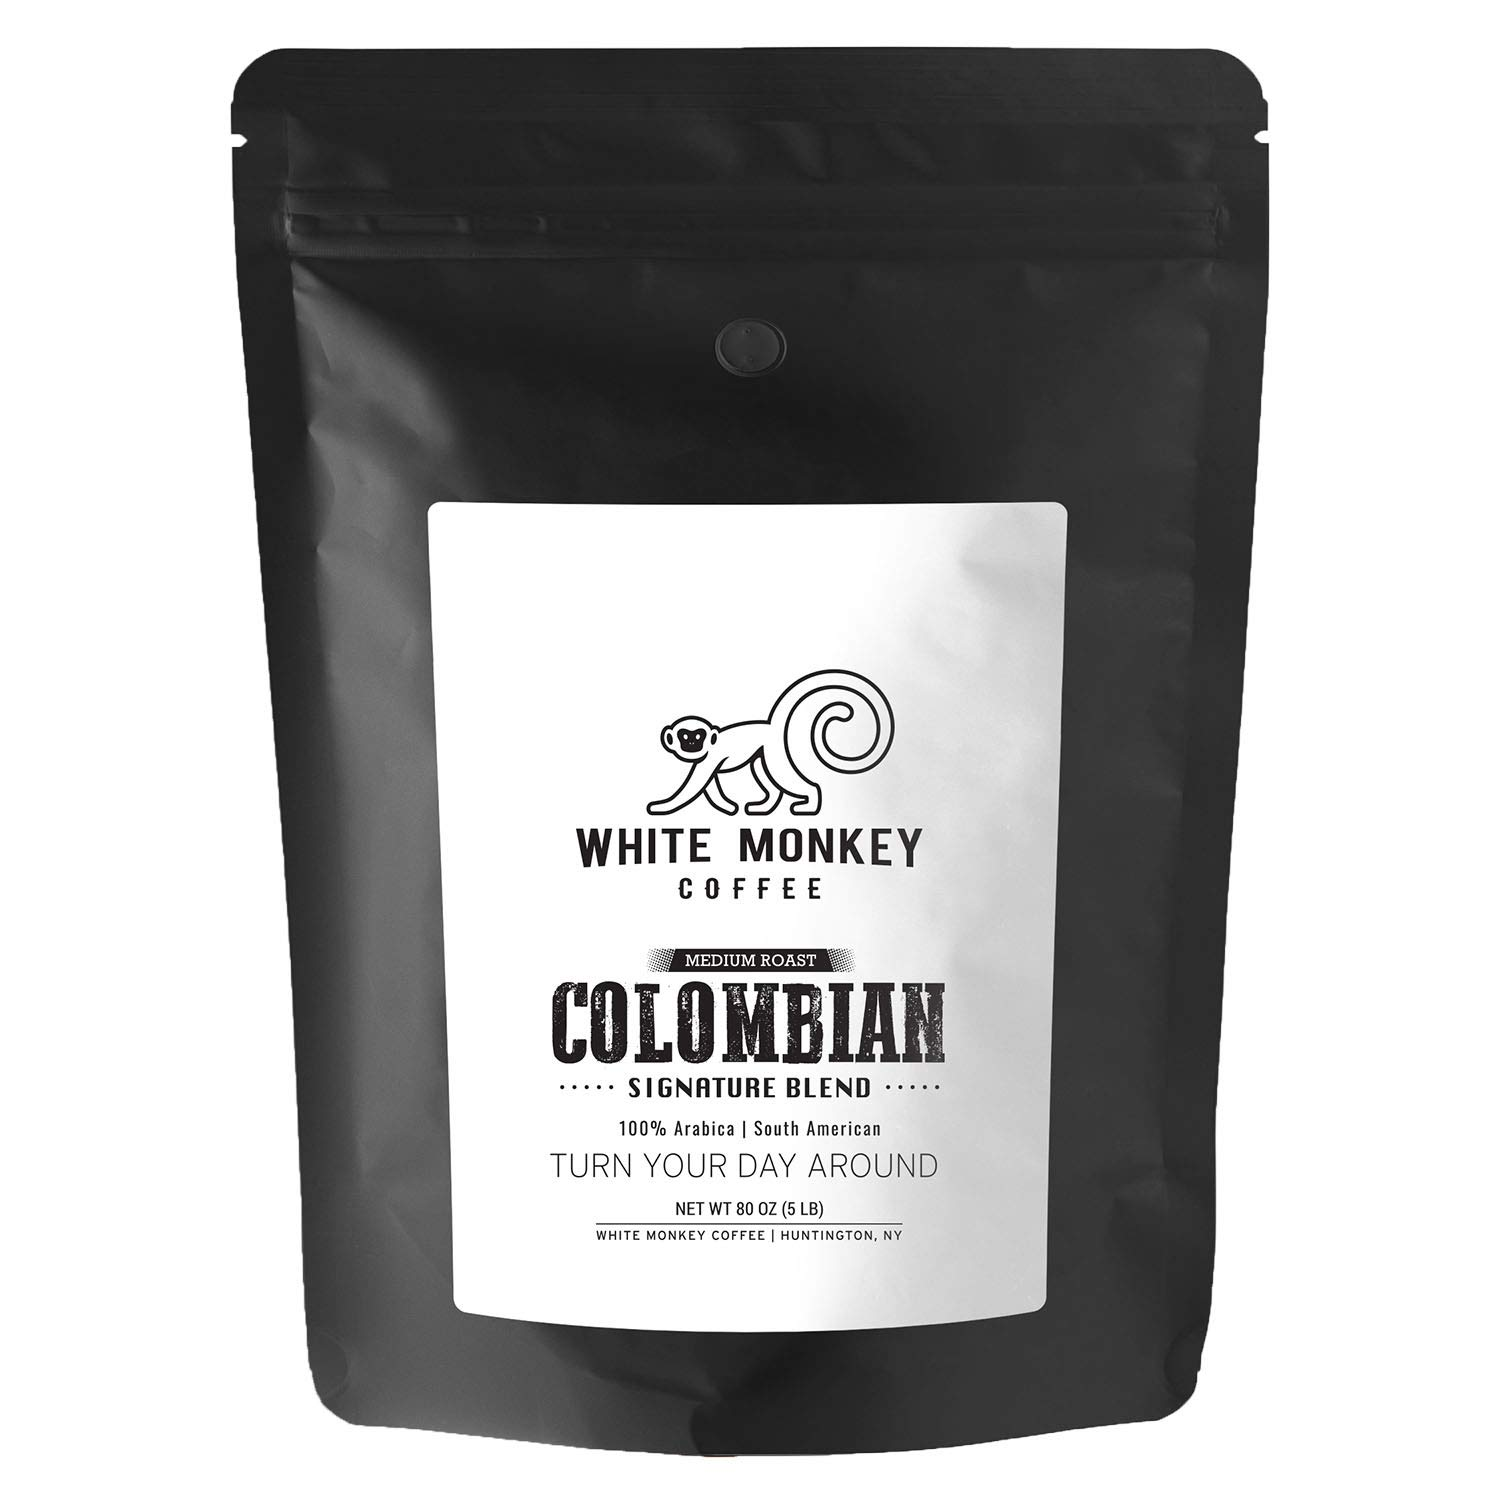 White Monkey 5LB Gourmet Bulk Coffee House Blend | Colombian Peruvian Beans | 100% Arabica | Medium Roast | Kosher | Whole Bean Coffee, 5 Pound (5 lb) Bag by Koala Lifestyle